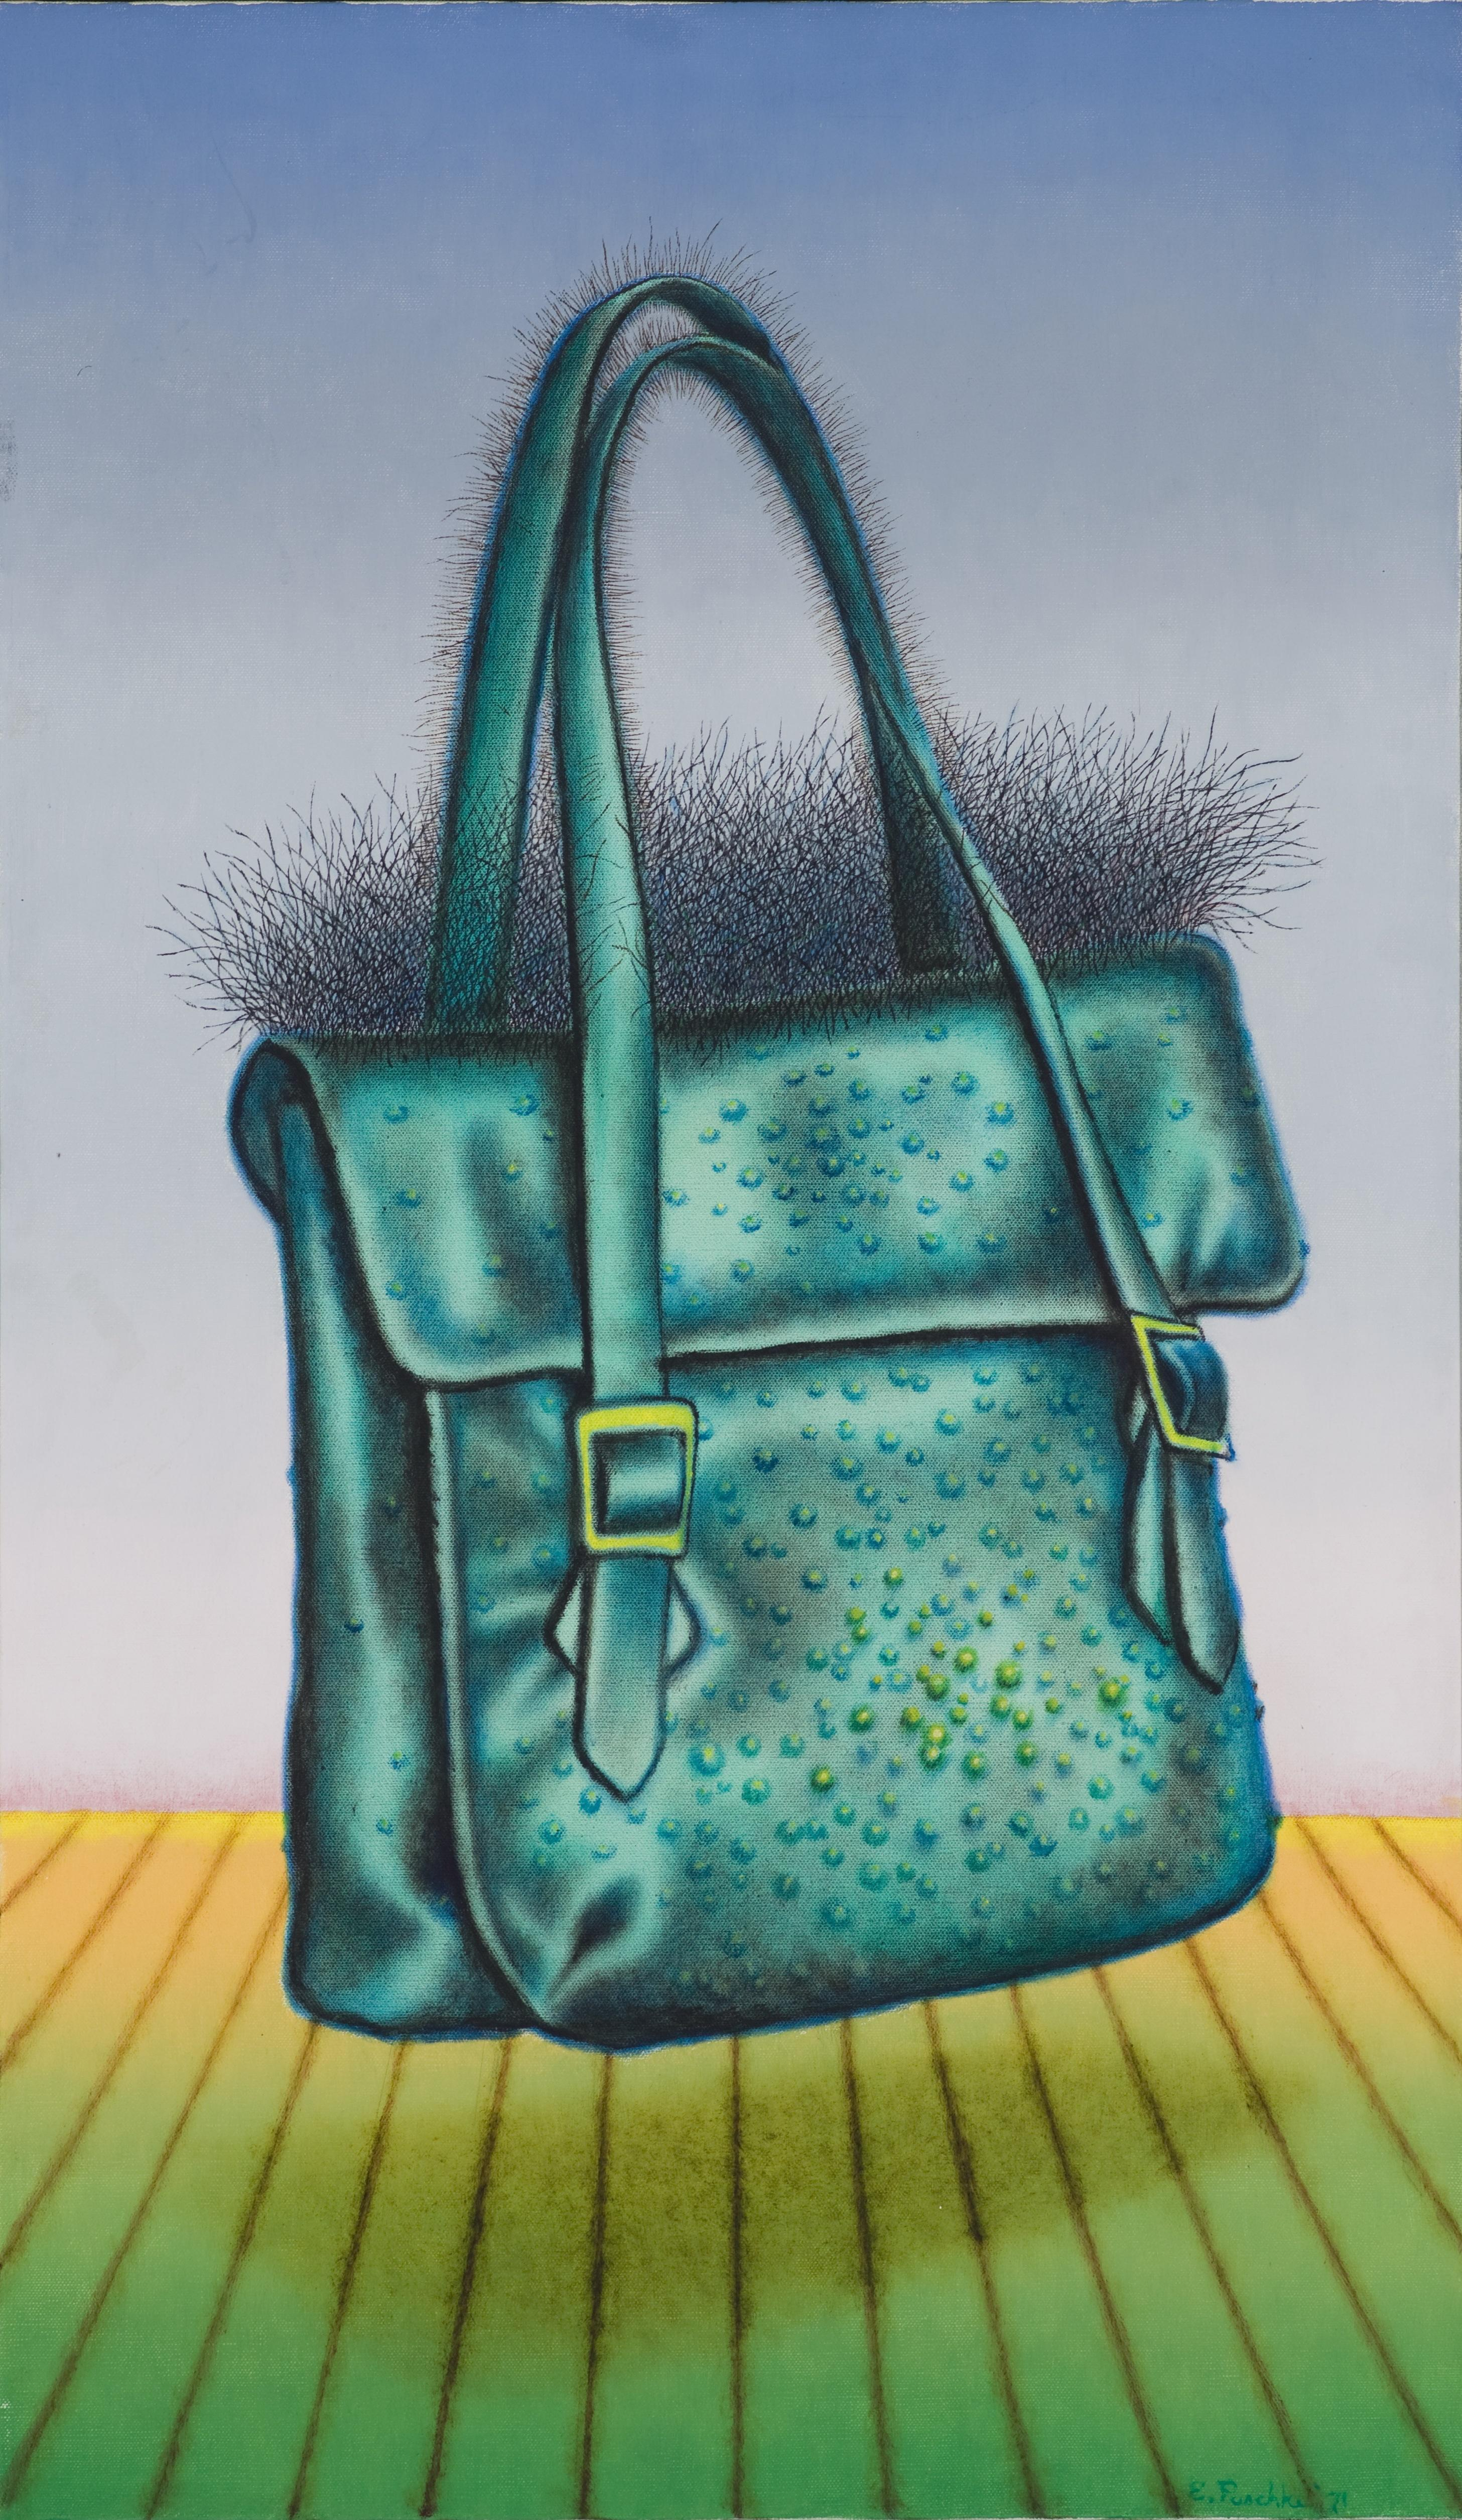 A vivid painting depicts a bumpy and hairy purse that levitates above a slatted floor in front of a faded blue background.